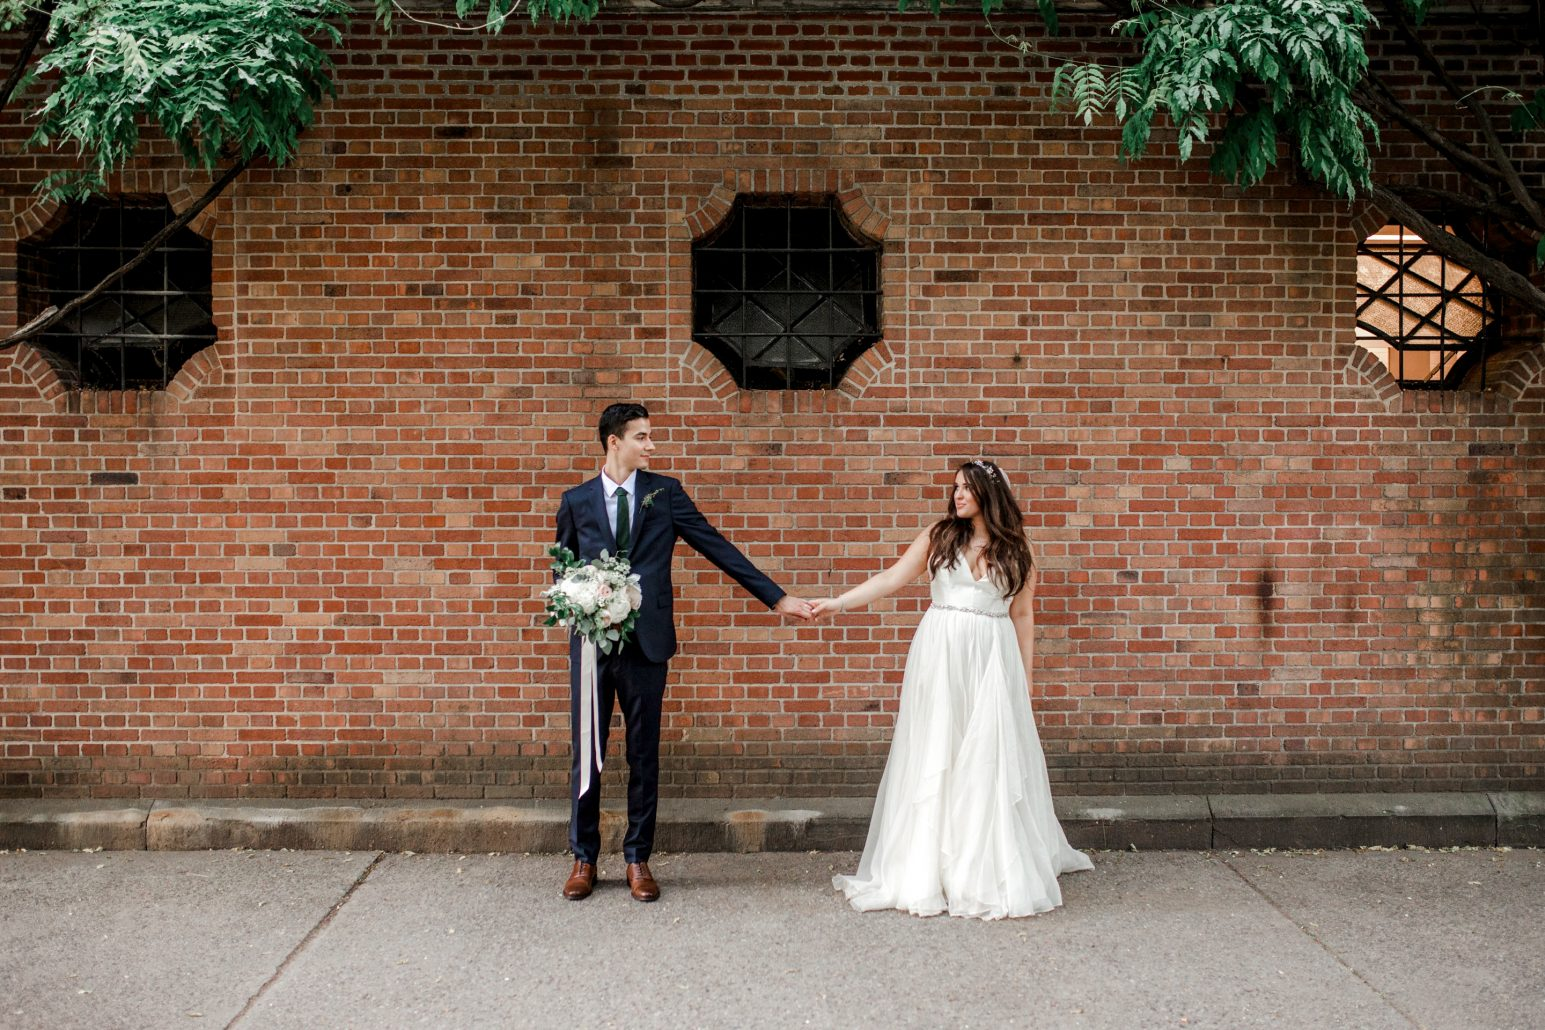 Kristin and Alen - Wedding in Central Park Manhattan New York